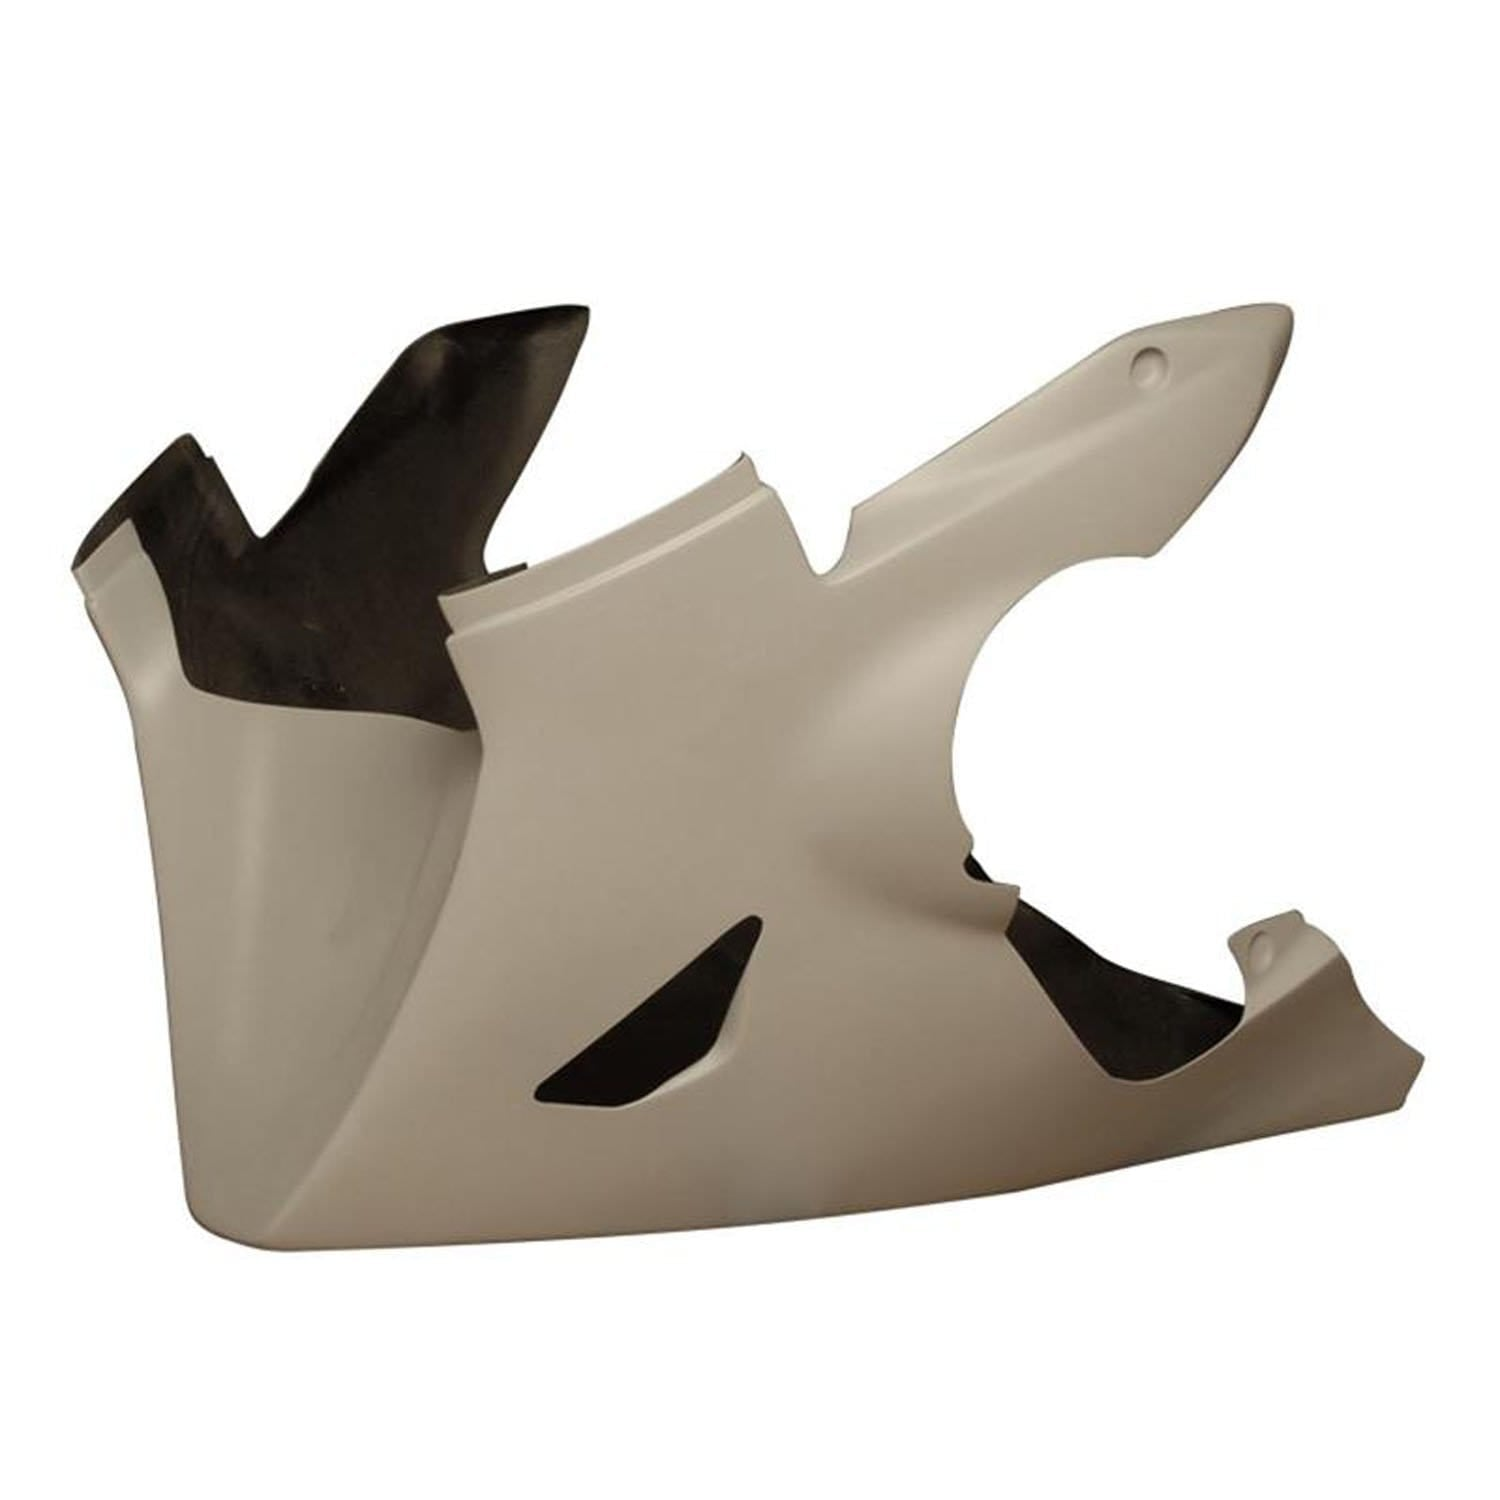 02/03 Yam R1 Lower Fairing - Pro Series - Woodcraft Technologies - Motorcycle Parts